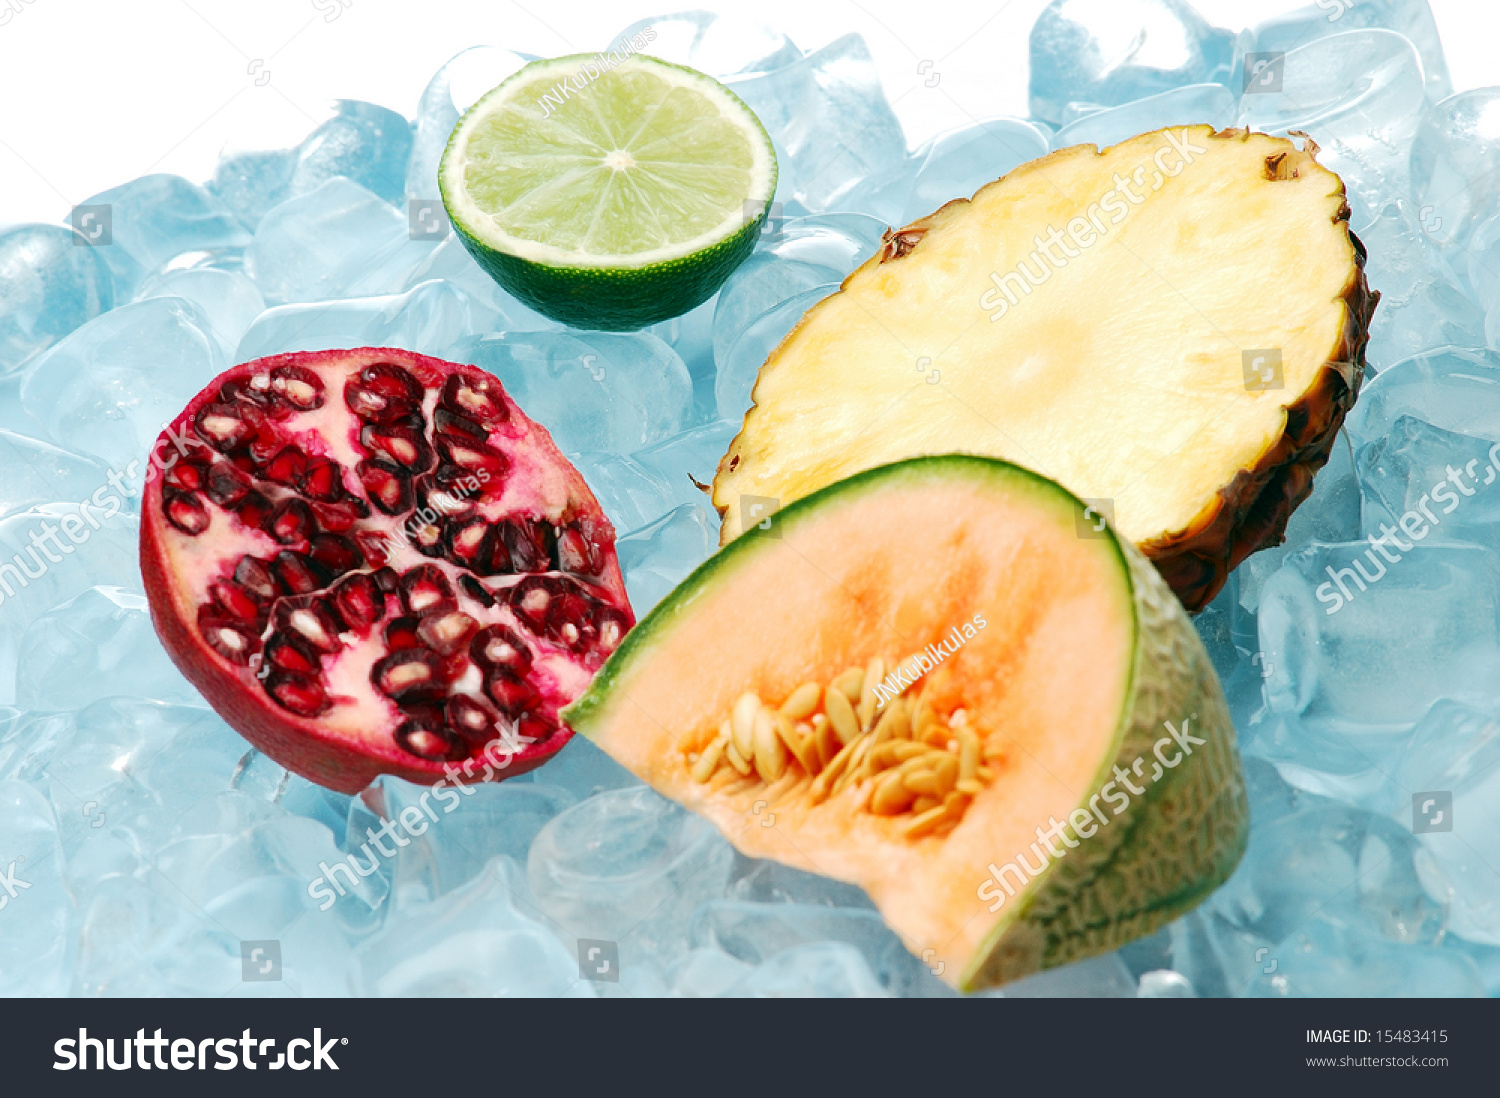 Tropical Fruits On Ice Stock Photo 15483415 : Shutterstock